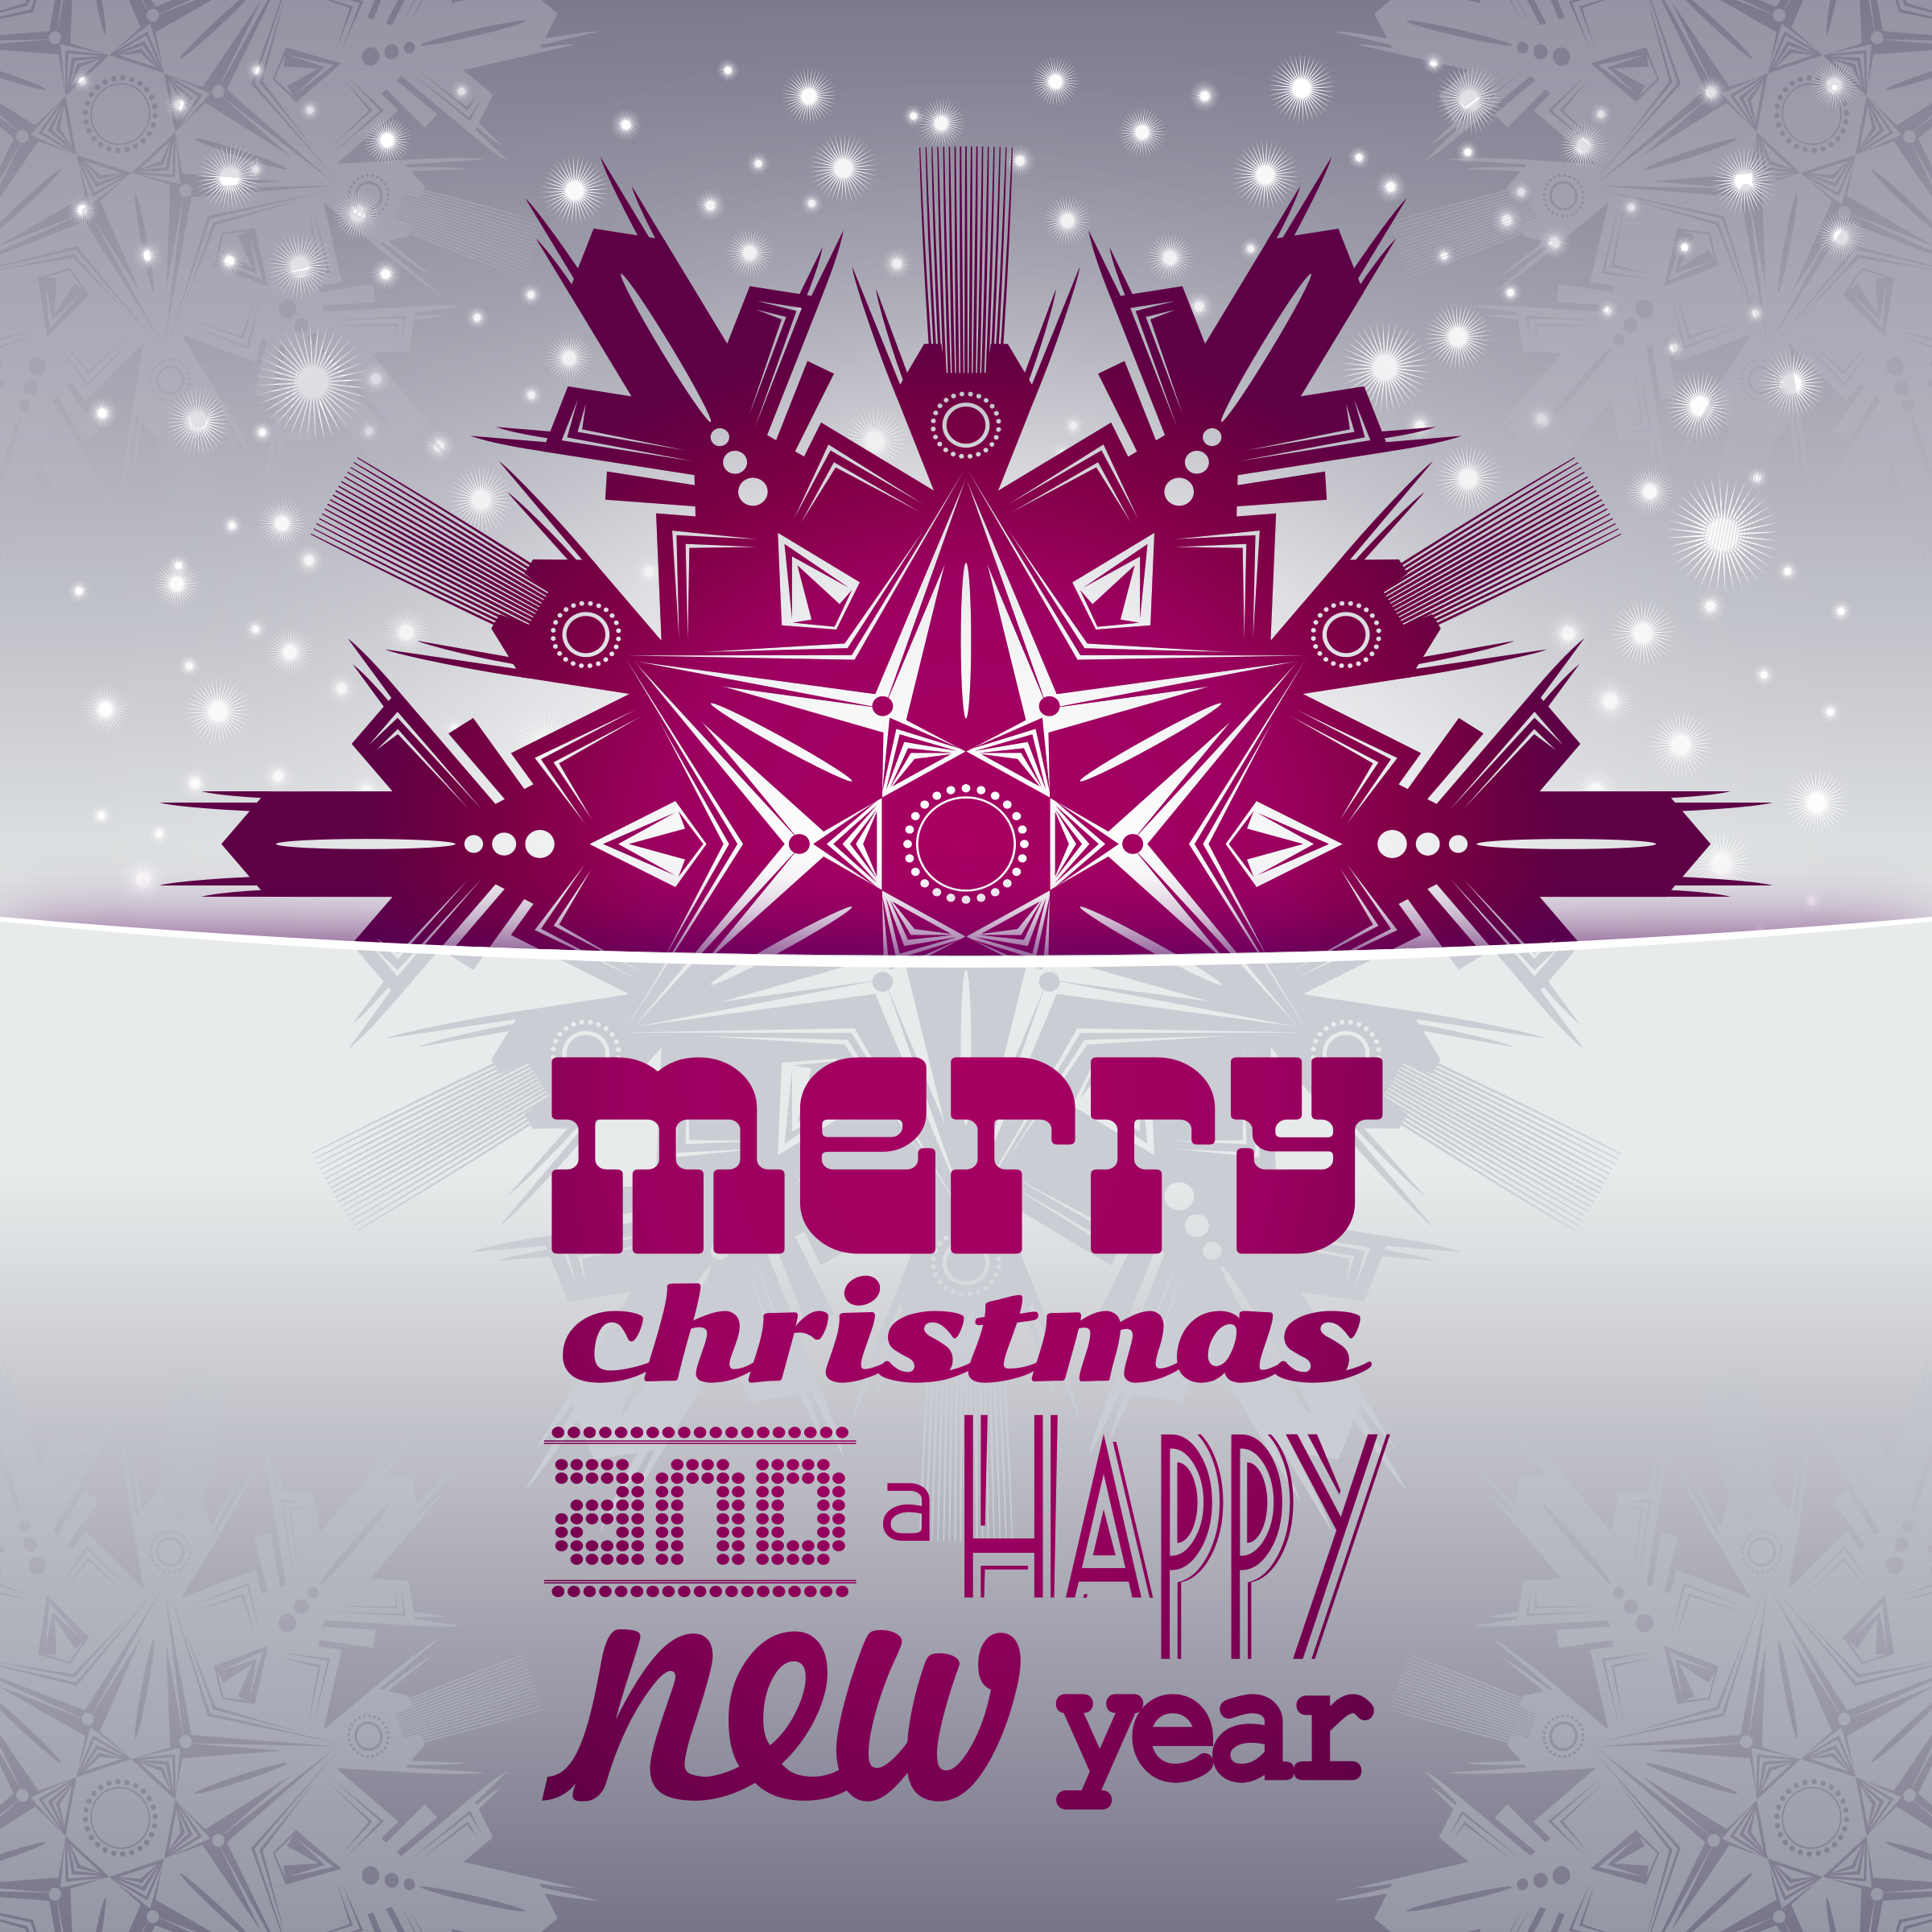 Clipart - Merry Christmas And A Happy New Year Card 2